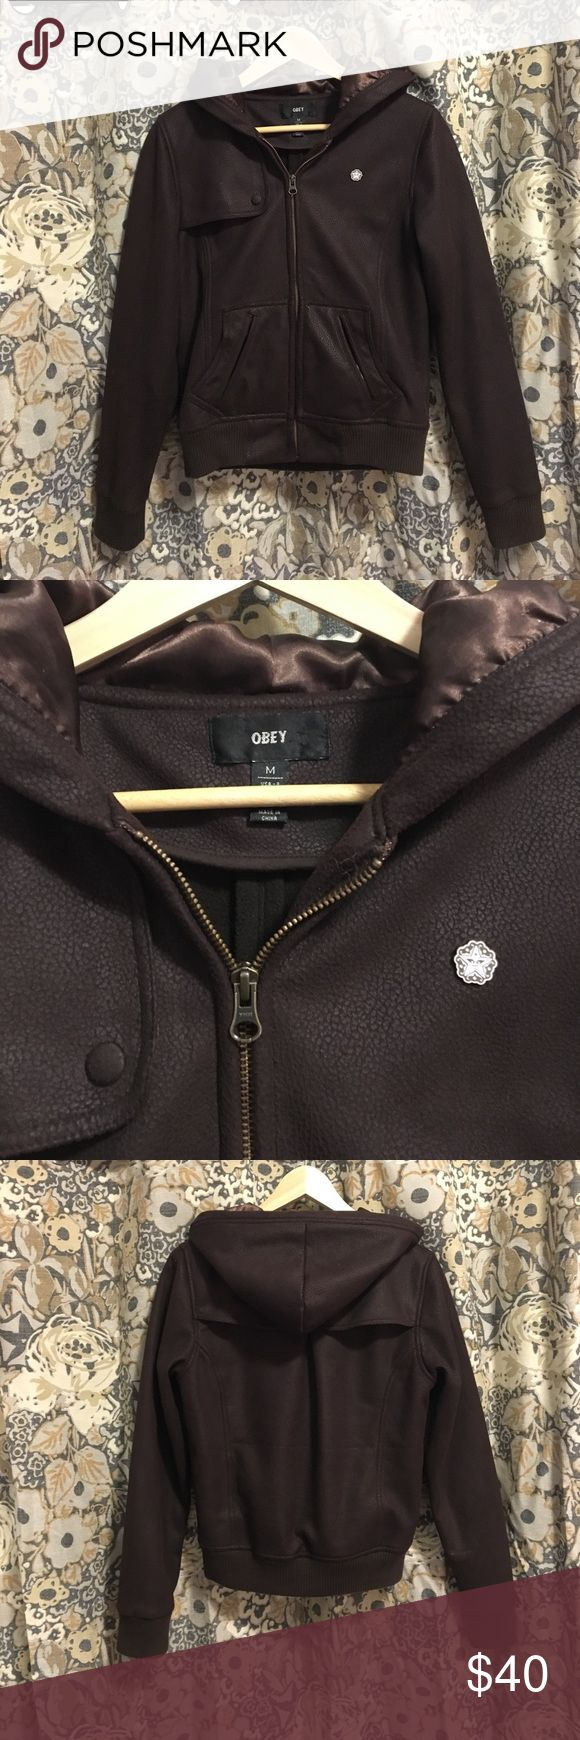 Obey Brown Bomber Jacket This jacket is so warm, soft, and feels new. The hood is made from a shiny polyester that imitates silk. Wonderful bomber. I am open to offers :) Obey Jackets & Coats